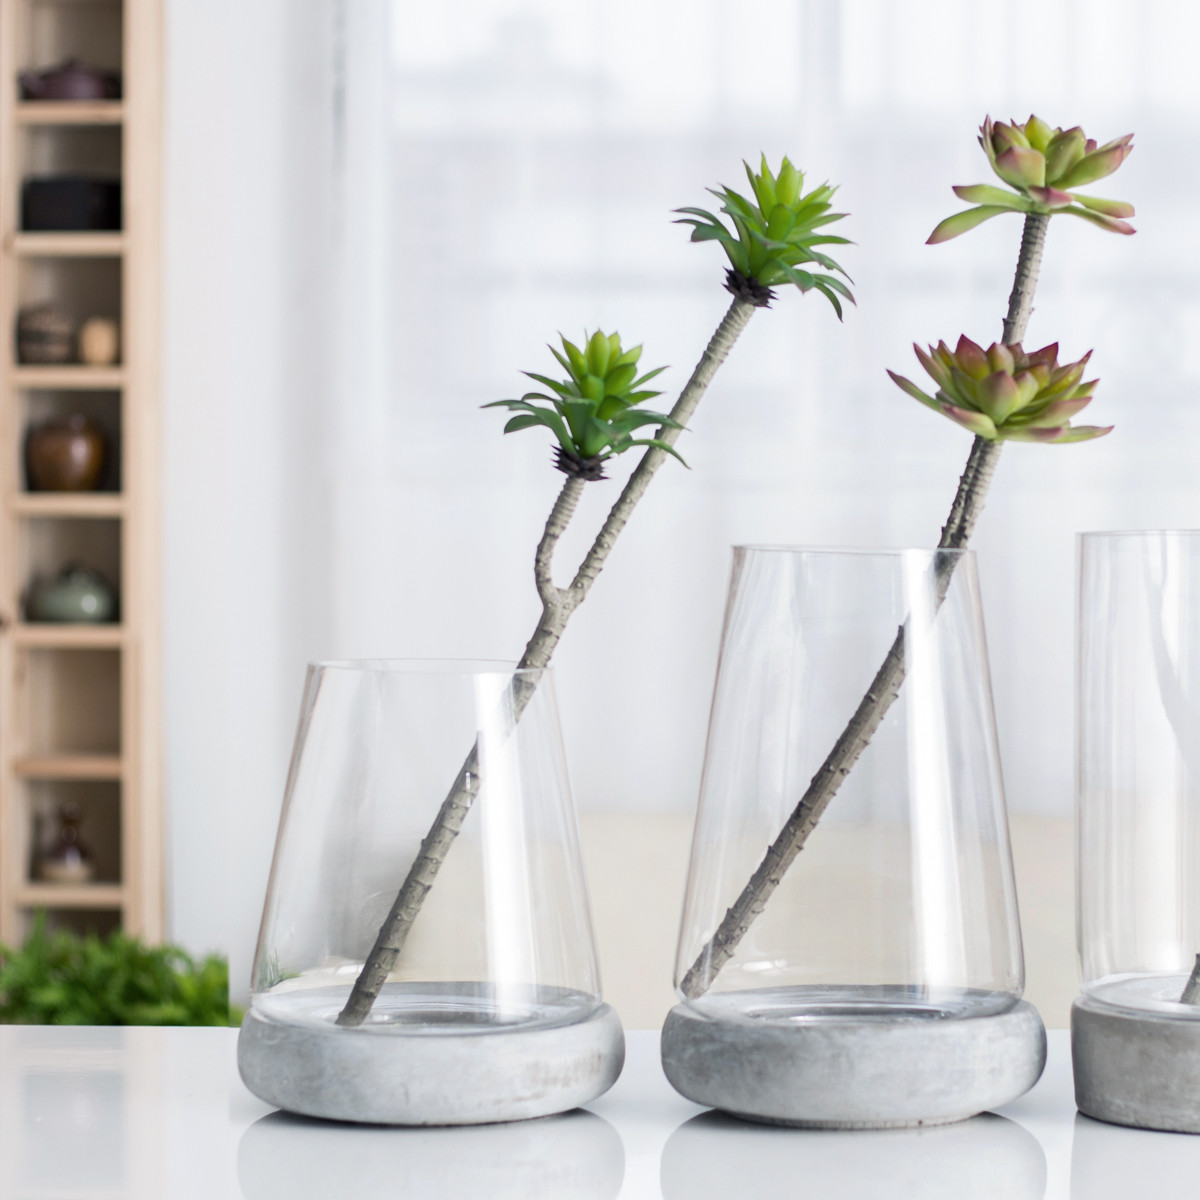 Floral Arrangement In Glass Vase Of Usd 25 42 Sicily Home Cas Series nordic Minimalist Glass Vase within Sicily Home Cas Series nordic Minimalist Glass Vase Cement Underpinning Home Decoration Flower Arrangement